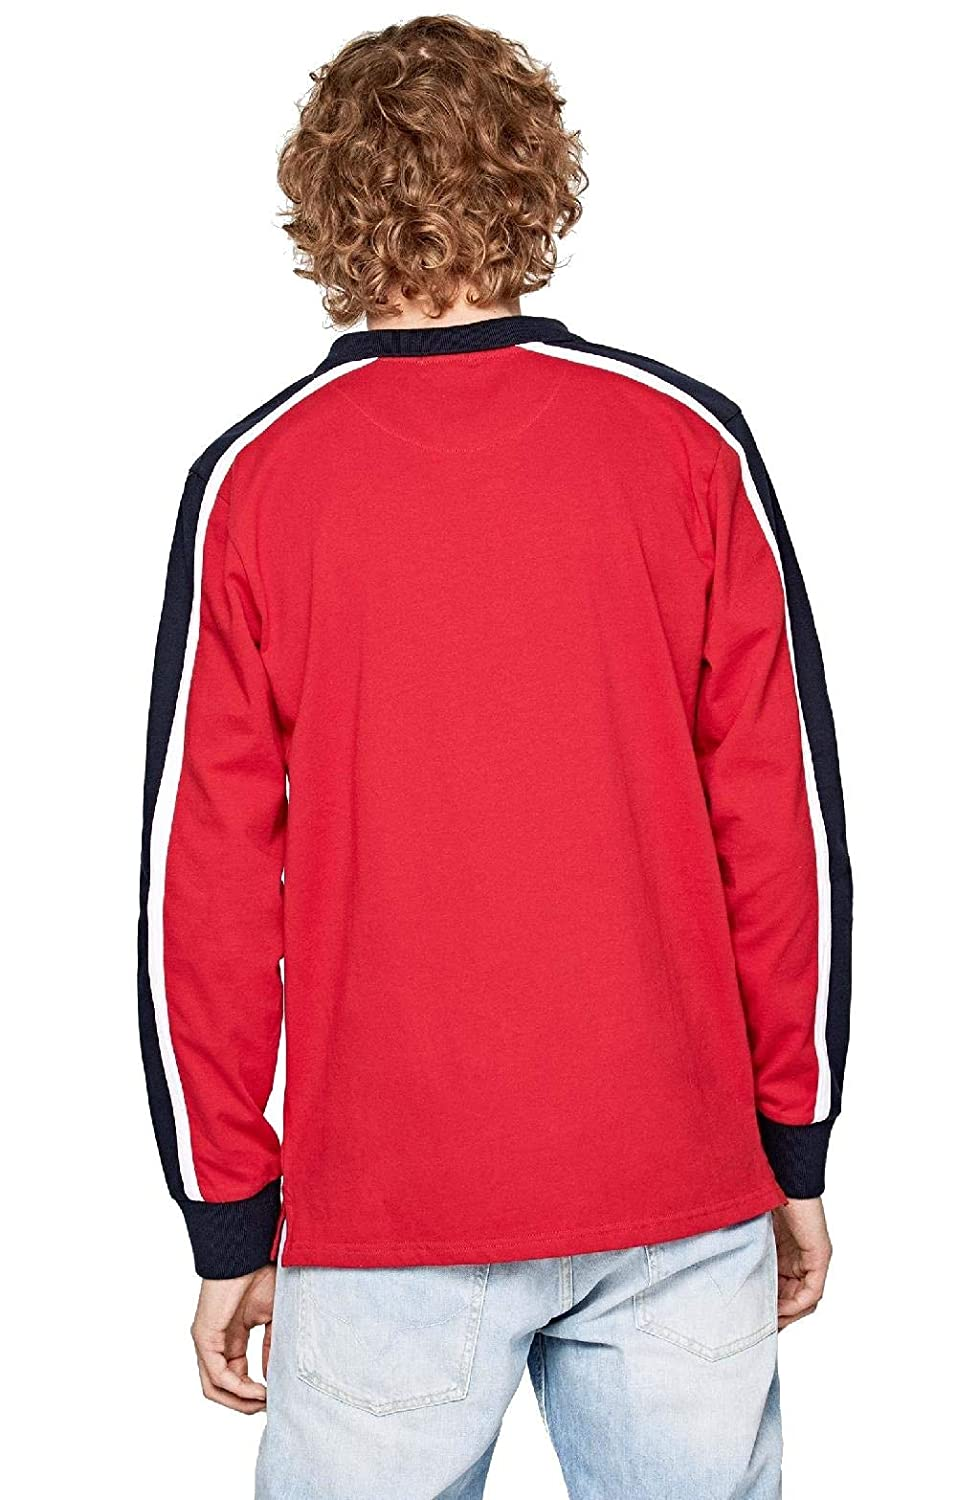 Pepe Jeans - Polo IKER Hombre Color: 264 Royal Red Talla: Size L ...